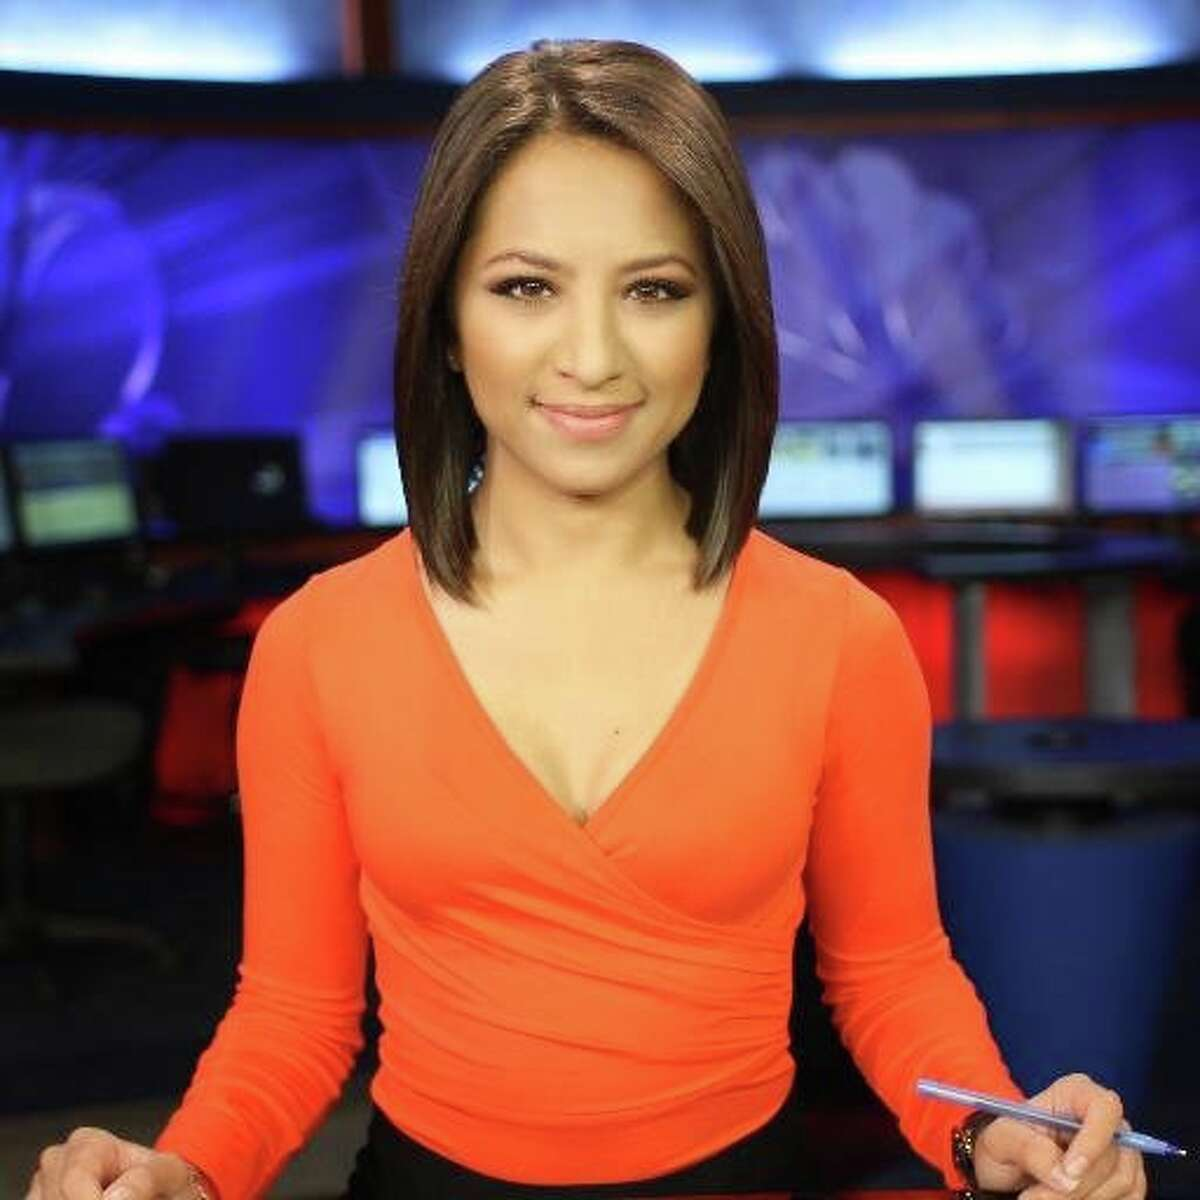 Anousah Rasta joined KPRC-TV as a reporter in October 2014 and later as a weekend morning anchor. Rasta previously worked at Los Angeles' KABC-TV and was a weekend anchor for El Paso's KTSM-TV. On Nov. 18, 2017, she announced she was leaving Channel 2 and heading back home to California.